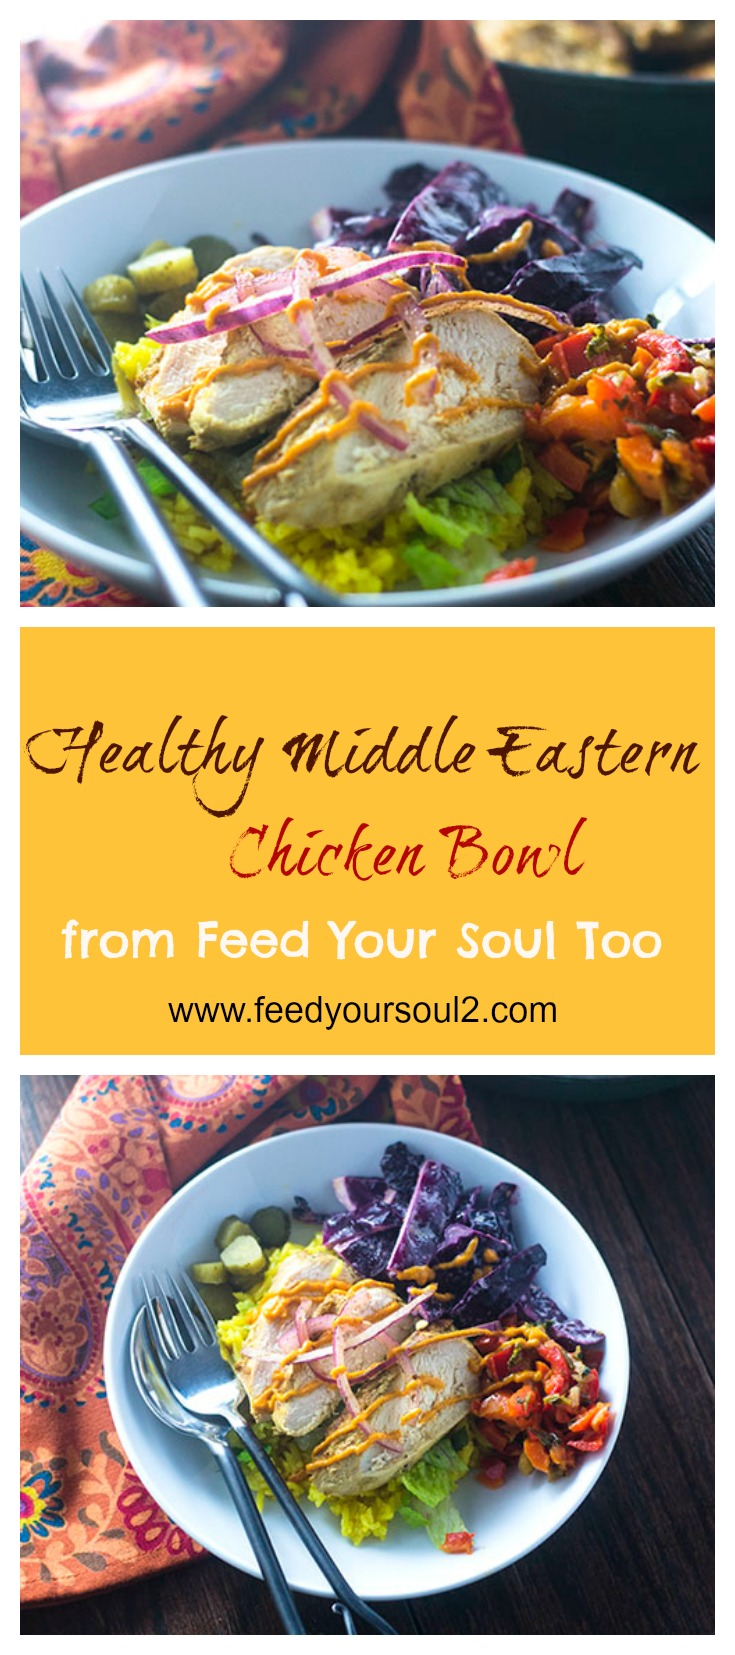 Healthy Middle Eastern Chicken Bowl #glutenfree #dinner #chickenrecipes | feedyoursoul2.com